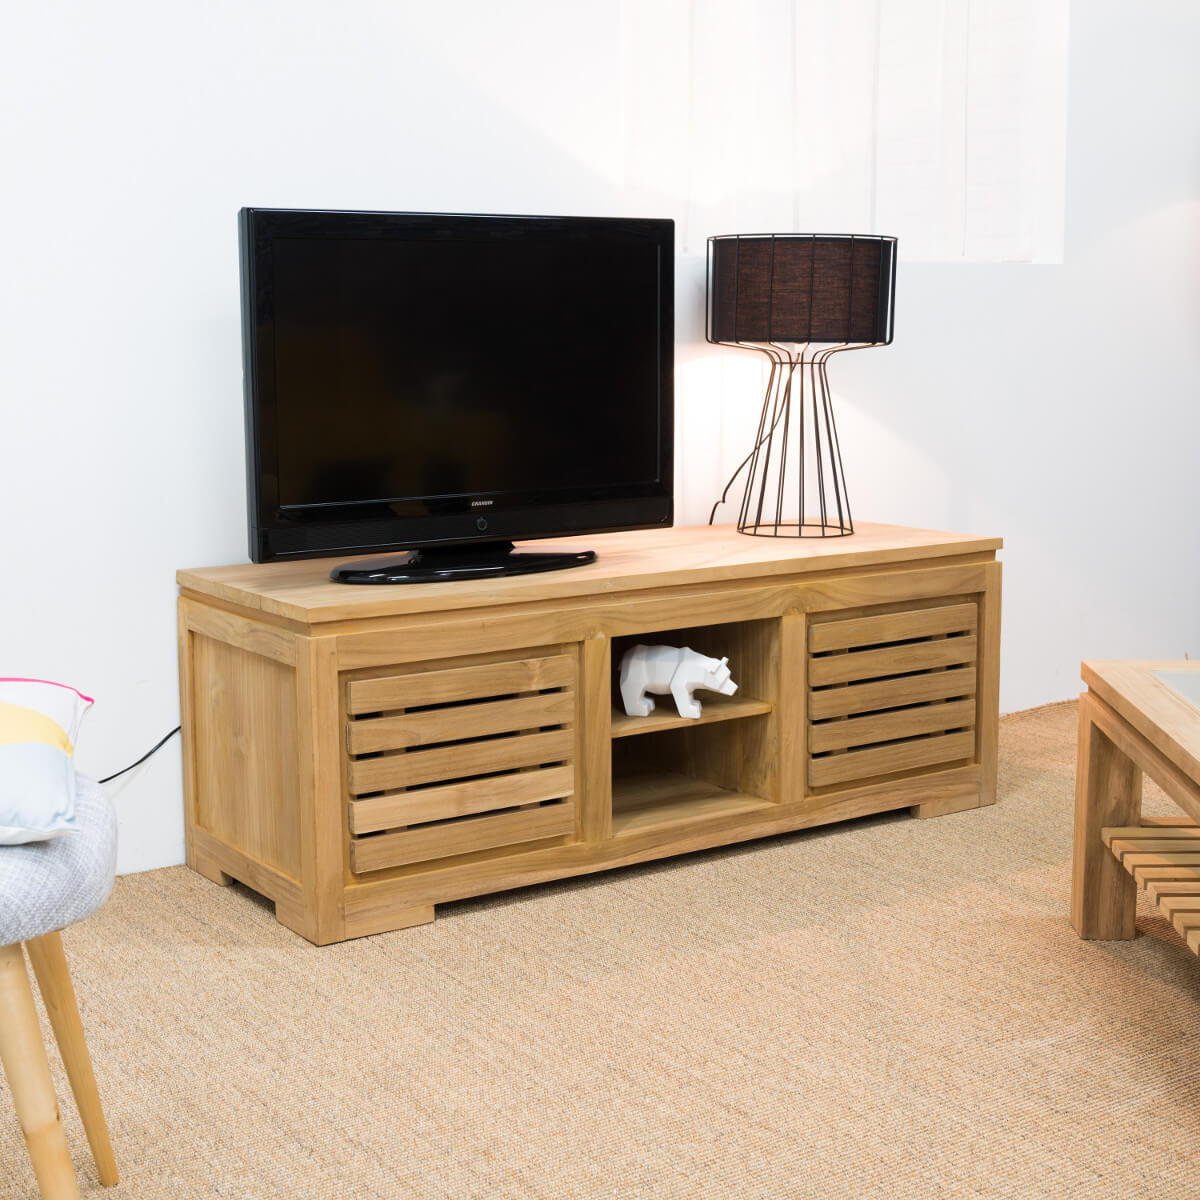 Meuble Tv Bois Teck - Meuble Tv Teck Meuble Tv Bois Naturel Rectangle Zen 140 Cm[mjhdah]https://www.artbambou.com/media/catalog/product/m/e/meuble-tv-bois-miel.jpg